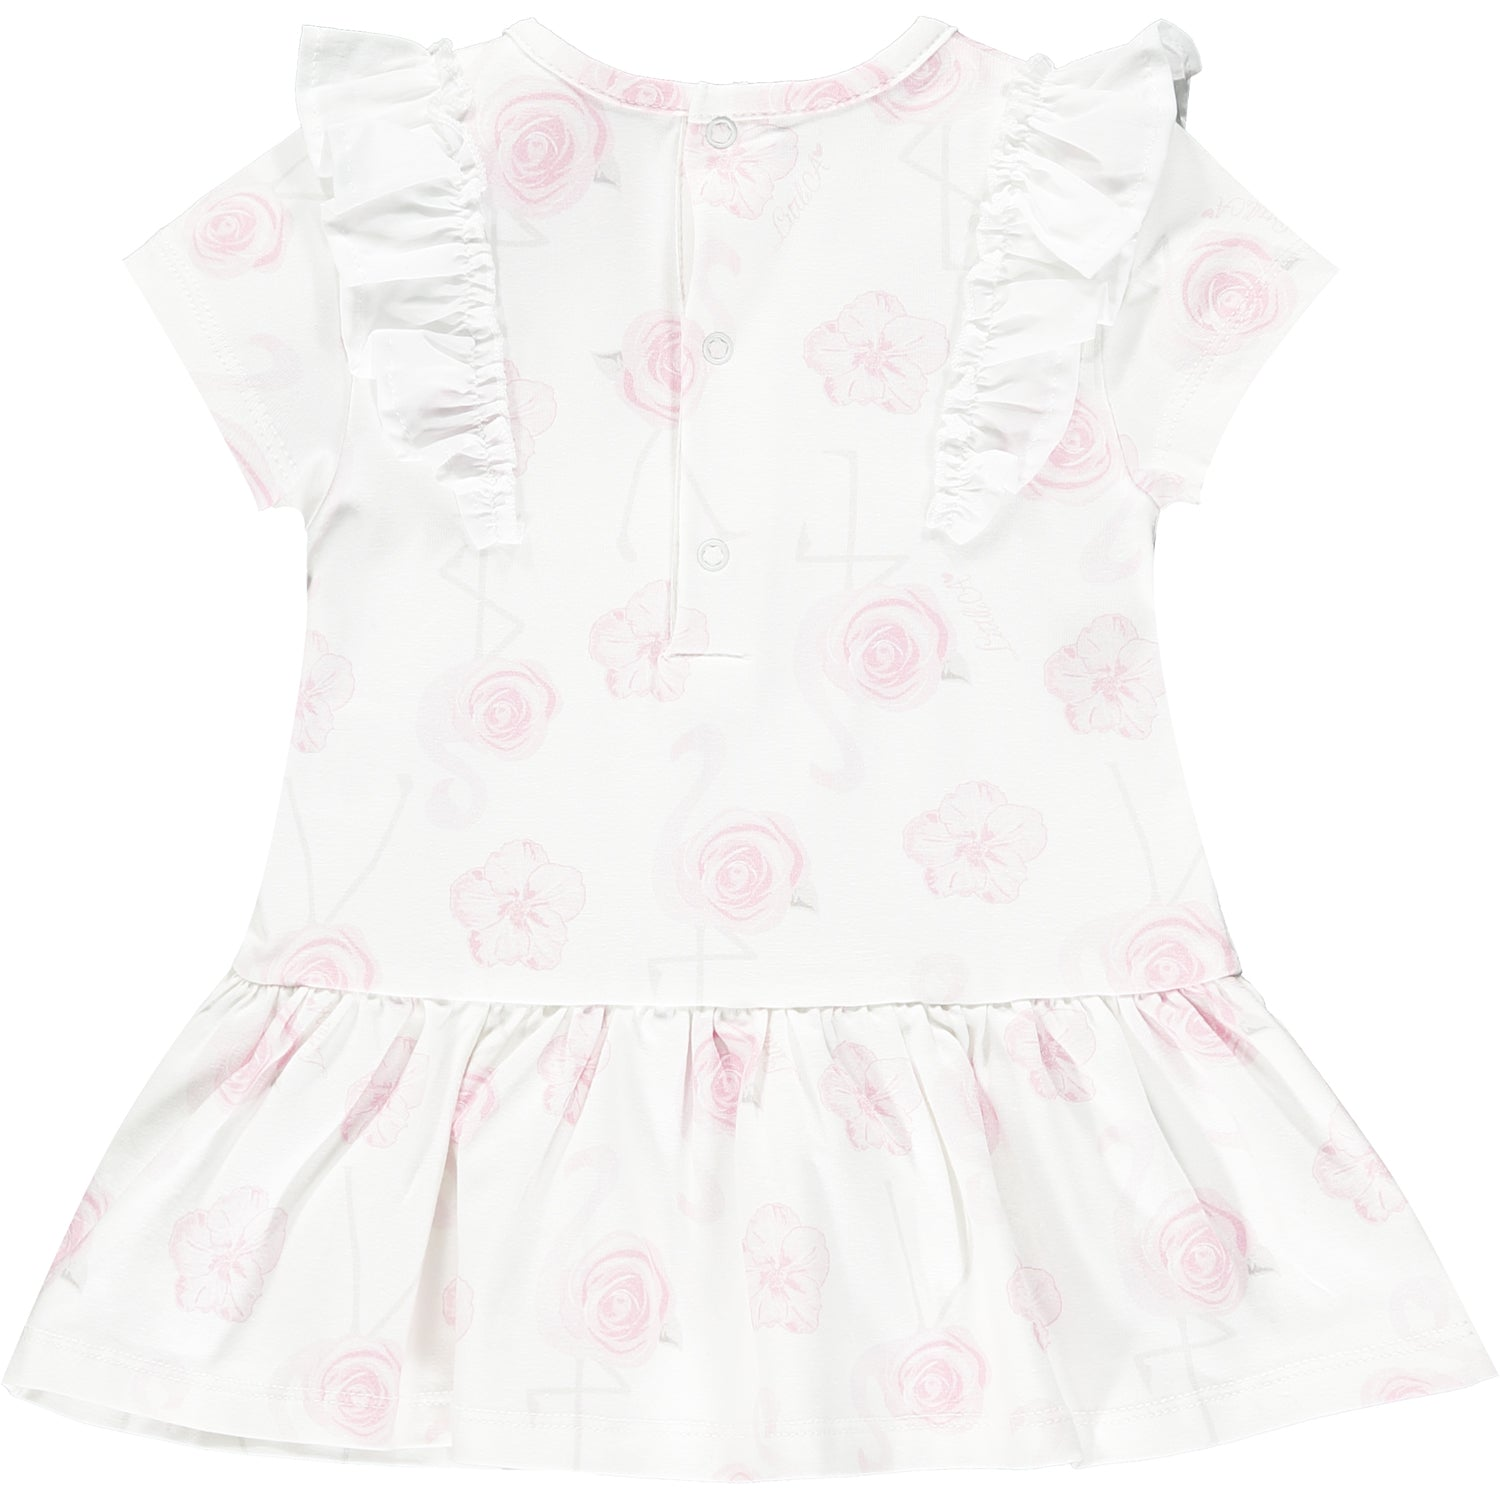 Little A LS21701 Jane Bright White Flamingo Print Dress